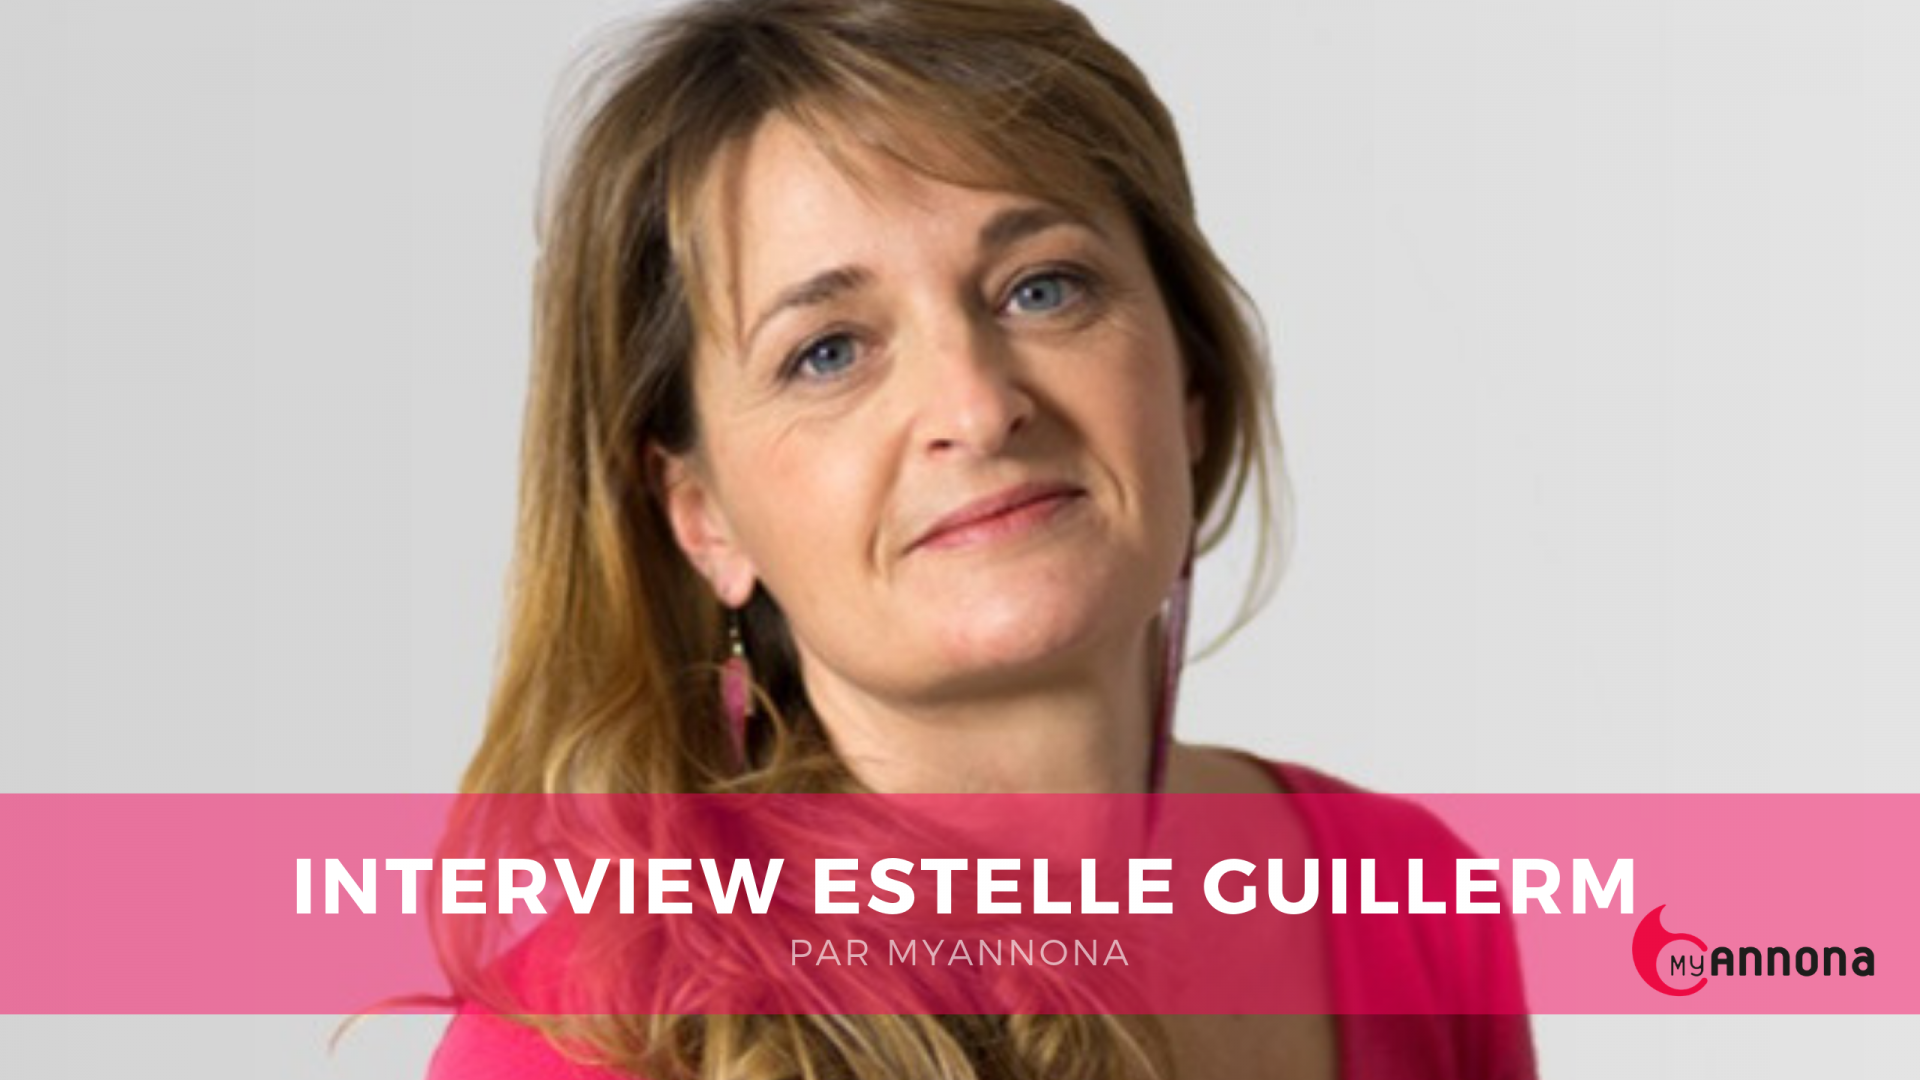 Interview estelle guillerm